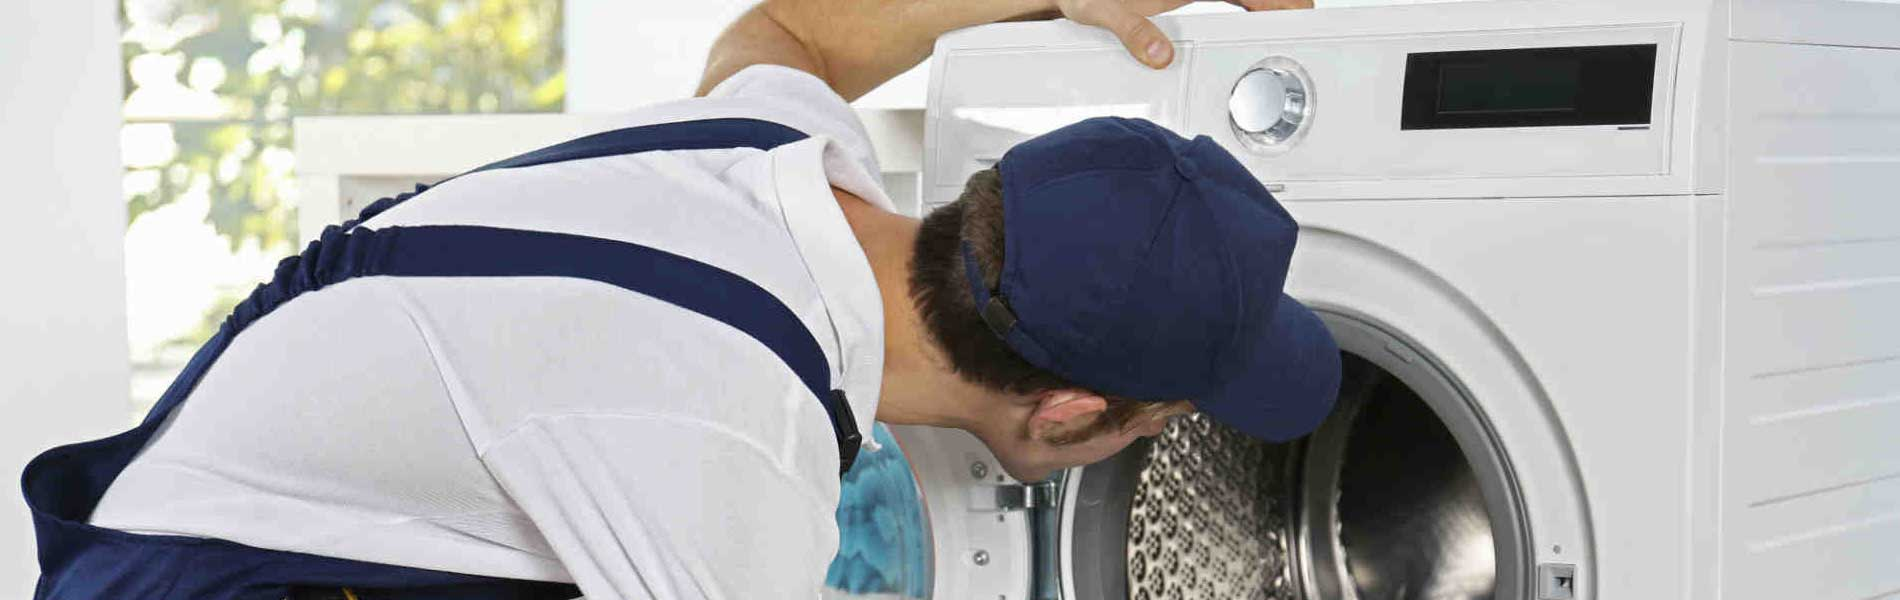 Godrej Washing Machine Mechanic in Pulianthope